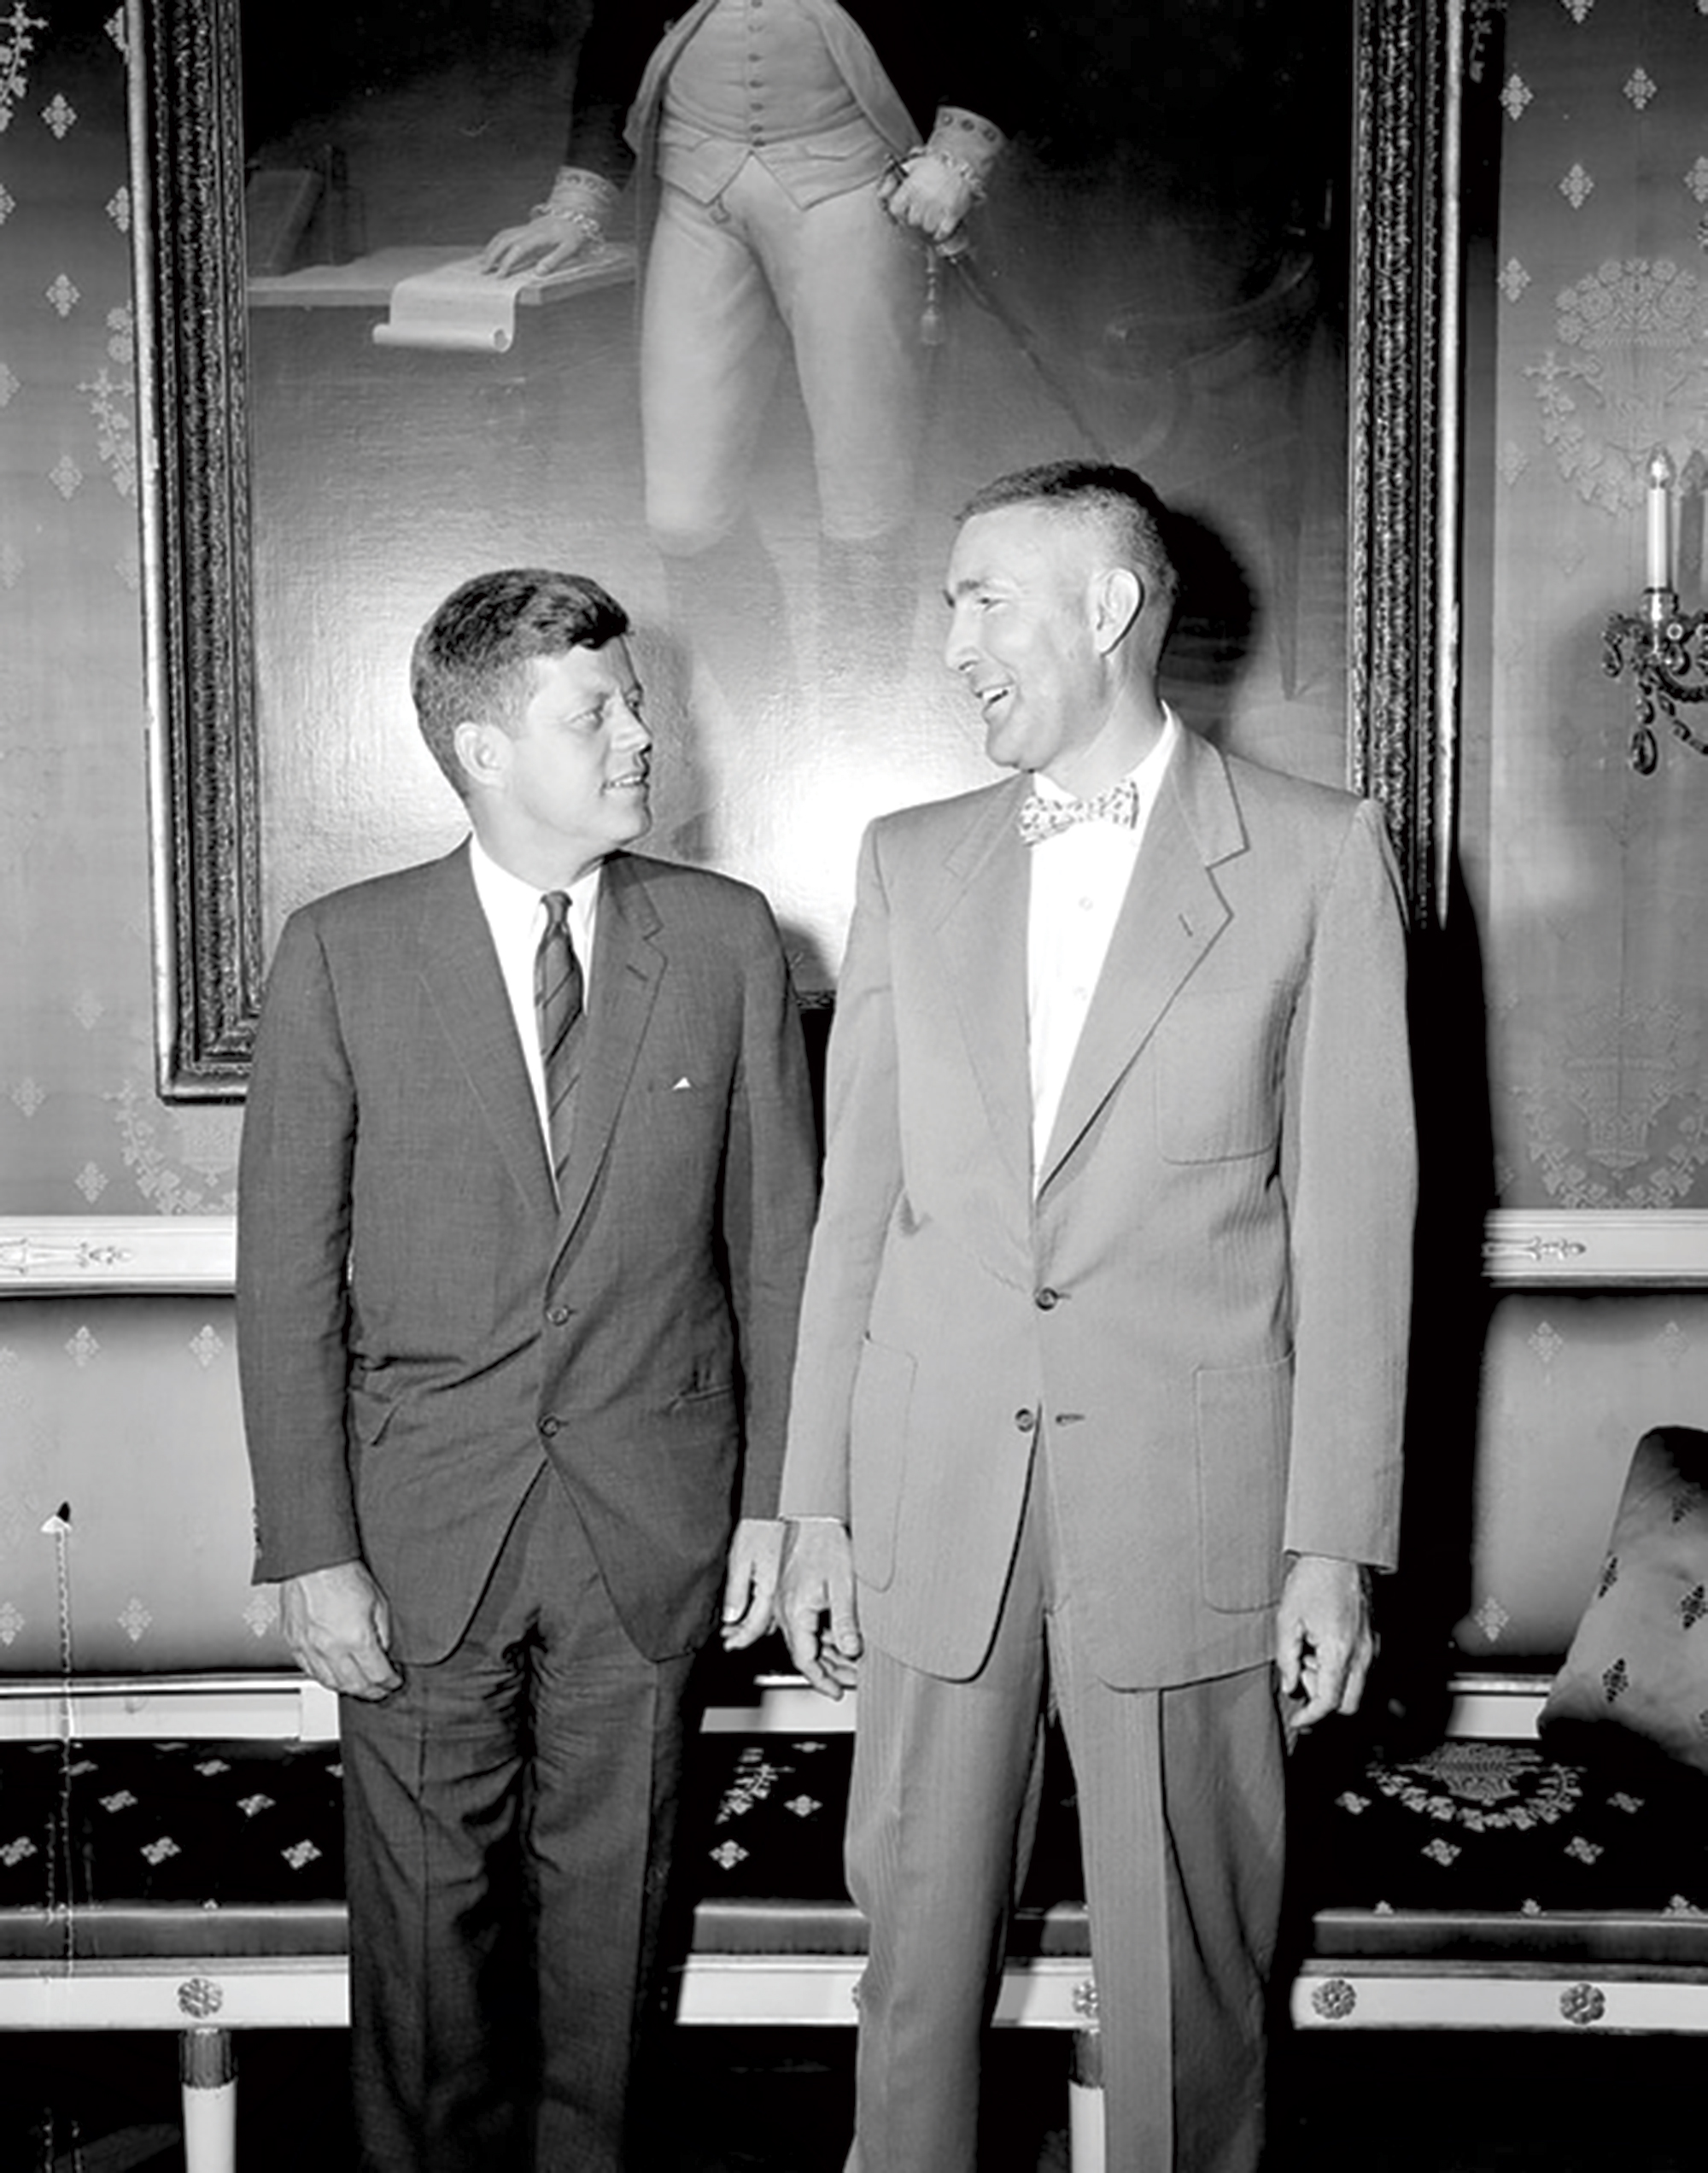 U.S. Representative Mo Udall with President John F. Kennedy in the Blue Room at the White House on May 18, 1961; Photo by Robert Knudsen courtesy JFK Presidential Library and Museum